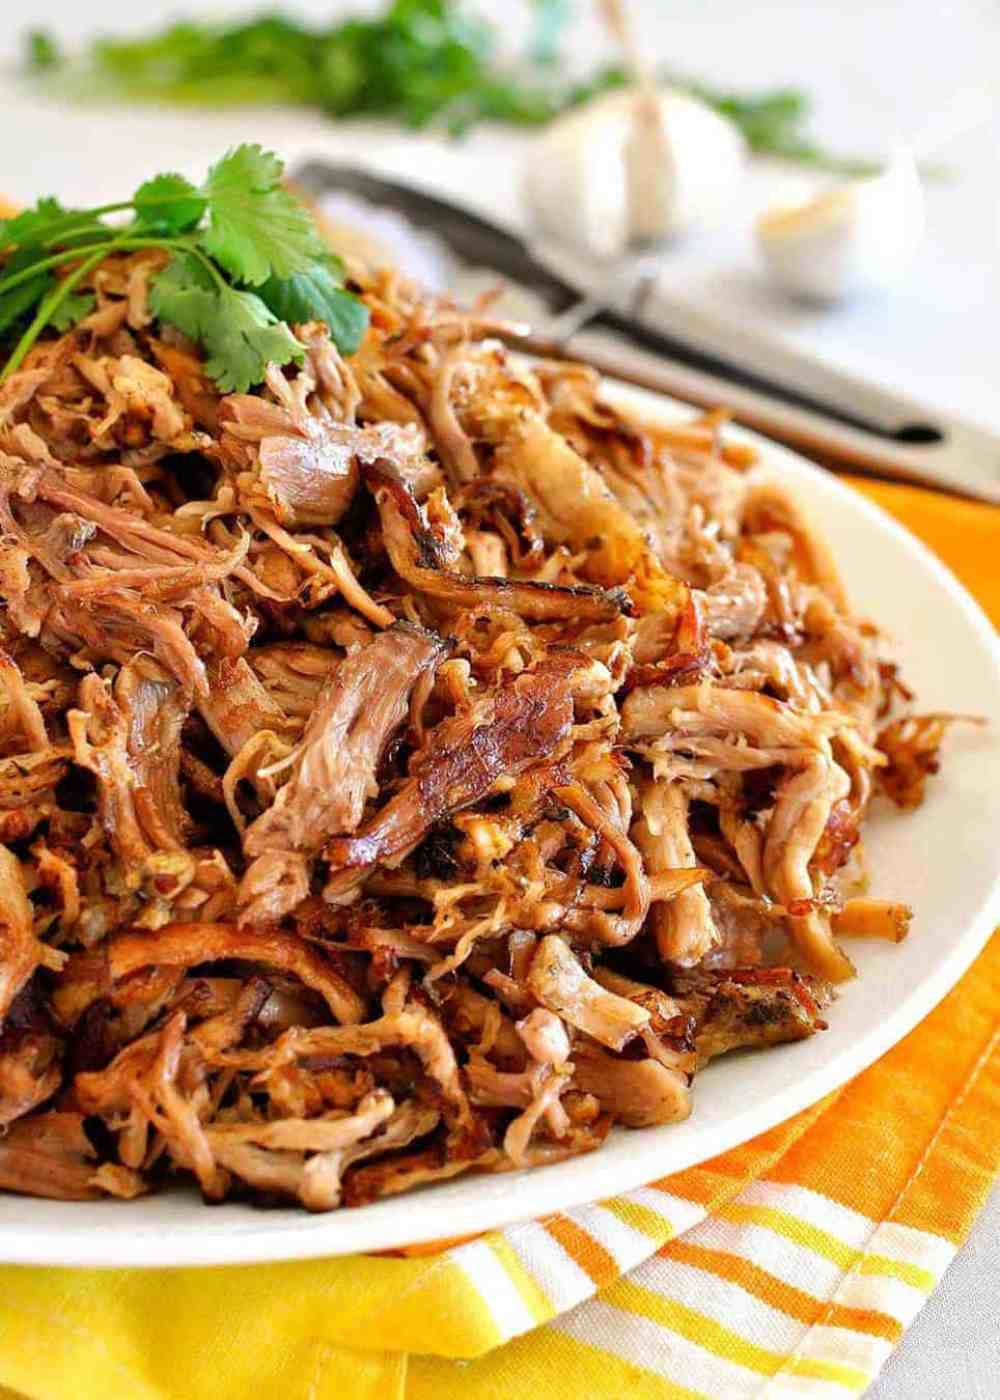 Pile of golden, crispy and juicy Pork Carnitas on a white plate.